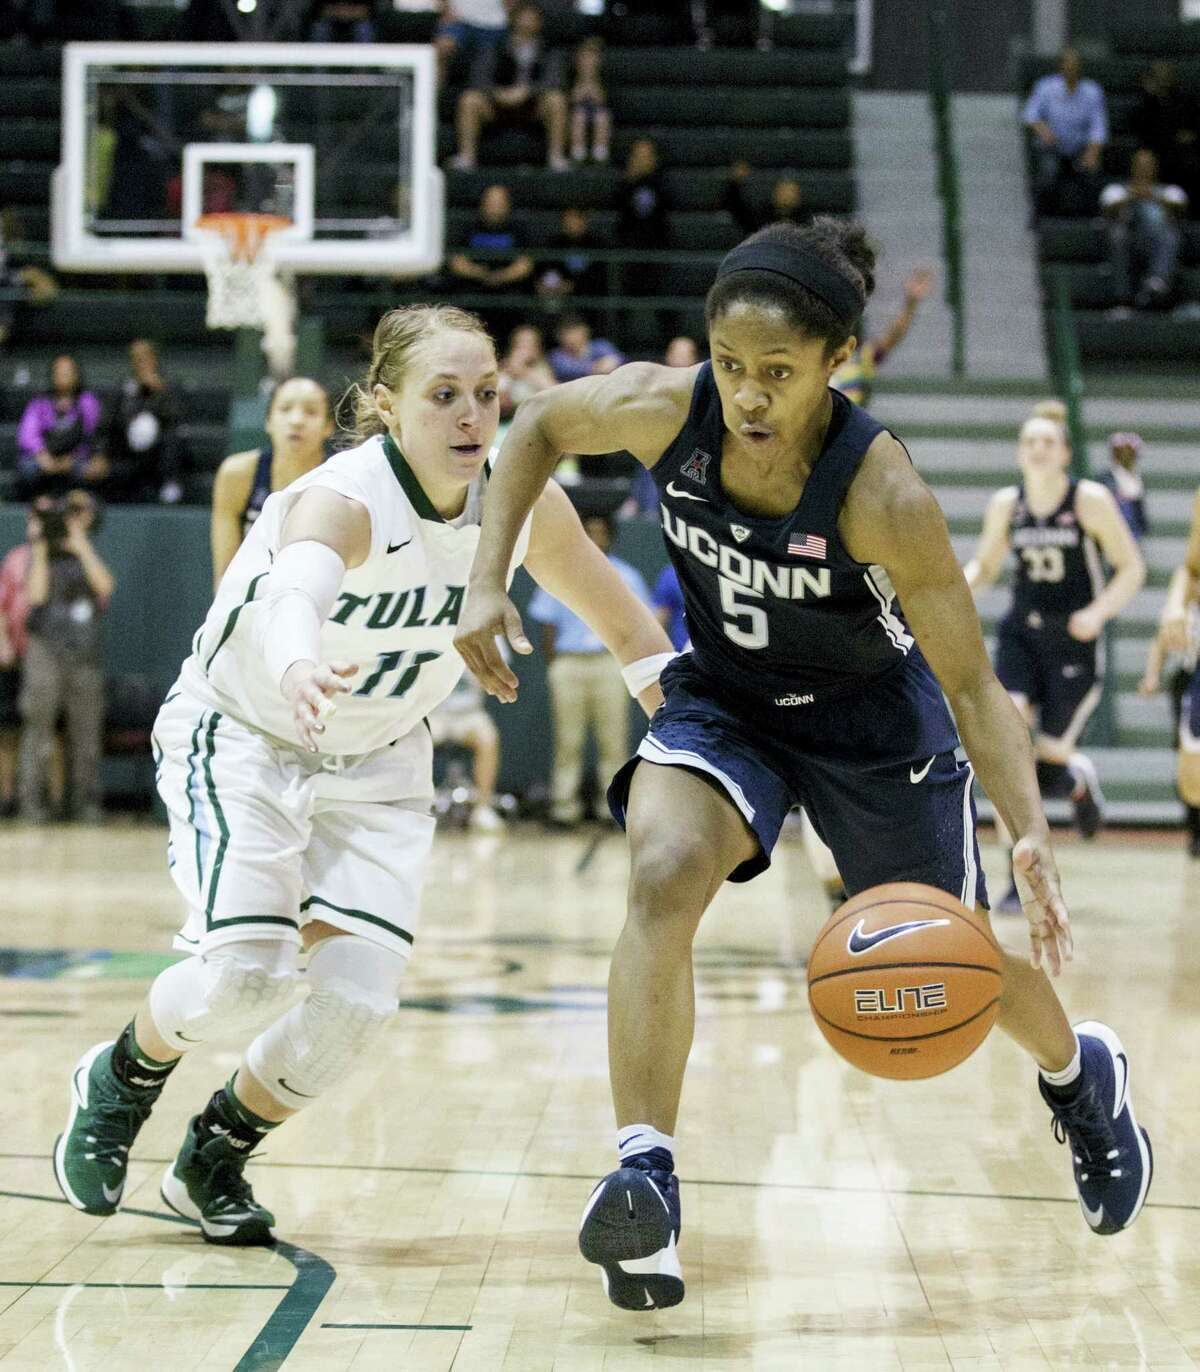 Tulane guard Leslie Vorpahl runs after UConn guard Crystal Dangerfield during the second half of the Huskies' victory Saturday against Tulane.